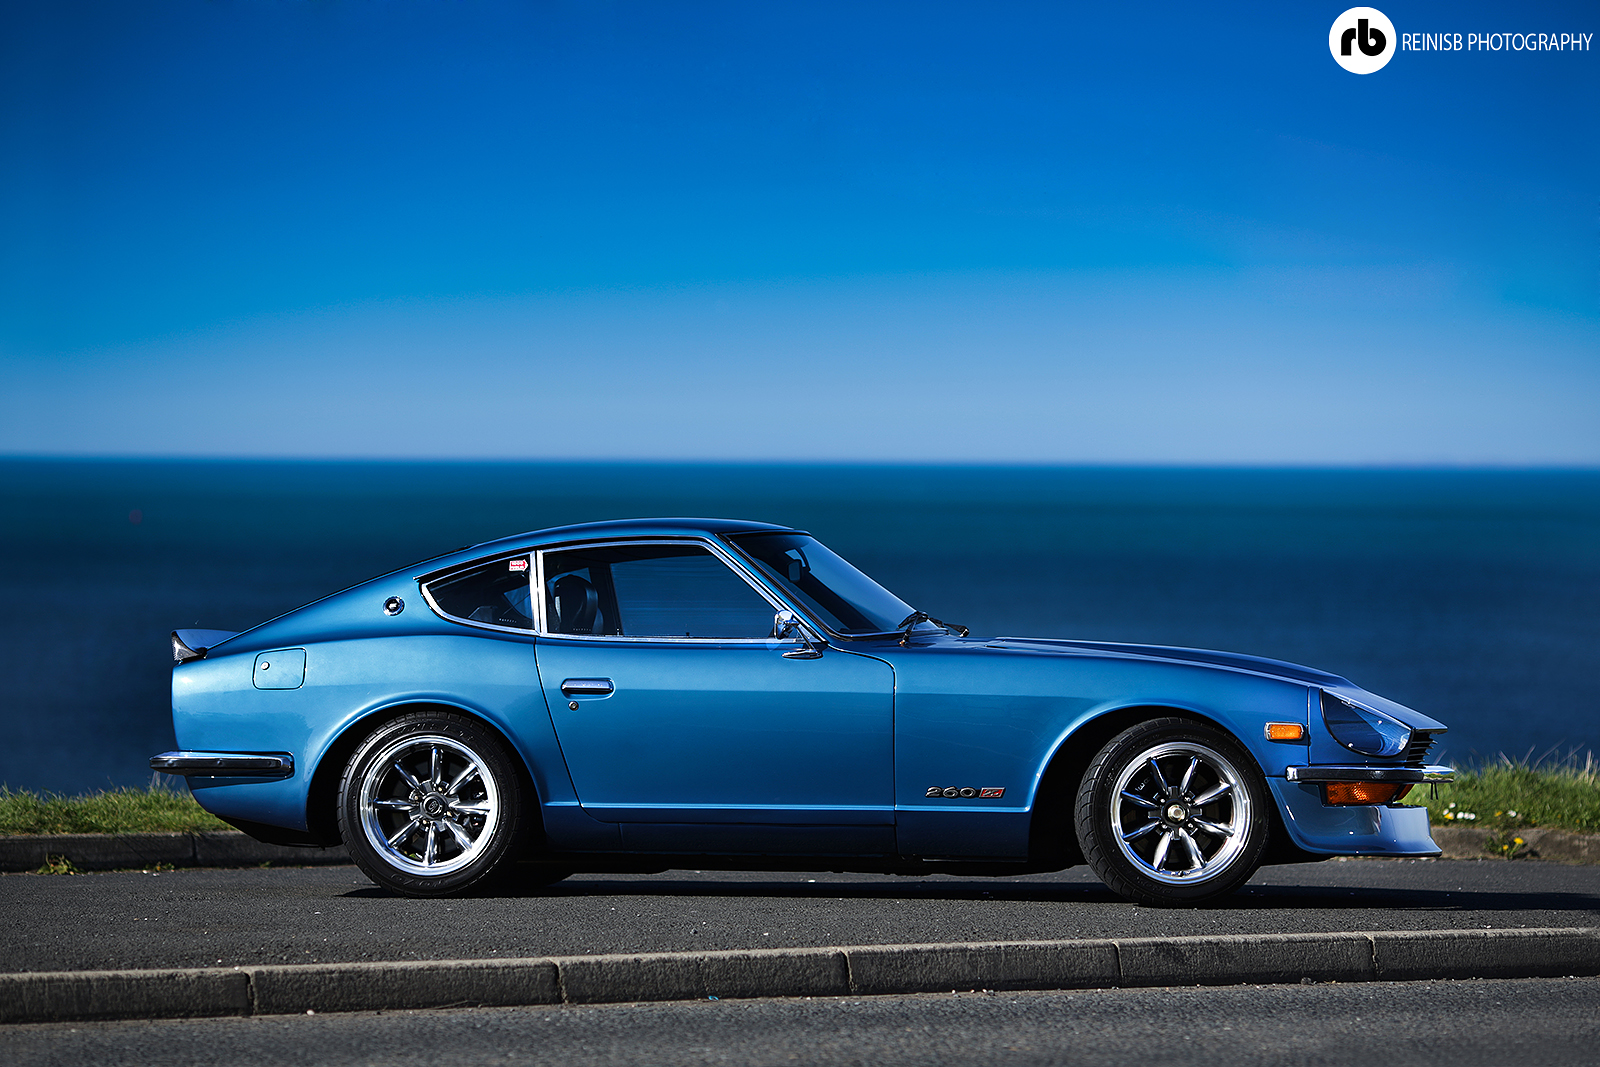 Matte Black Wallpaper Reinis Babrovskis Photography Rb26 Datsun 260z